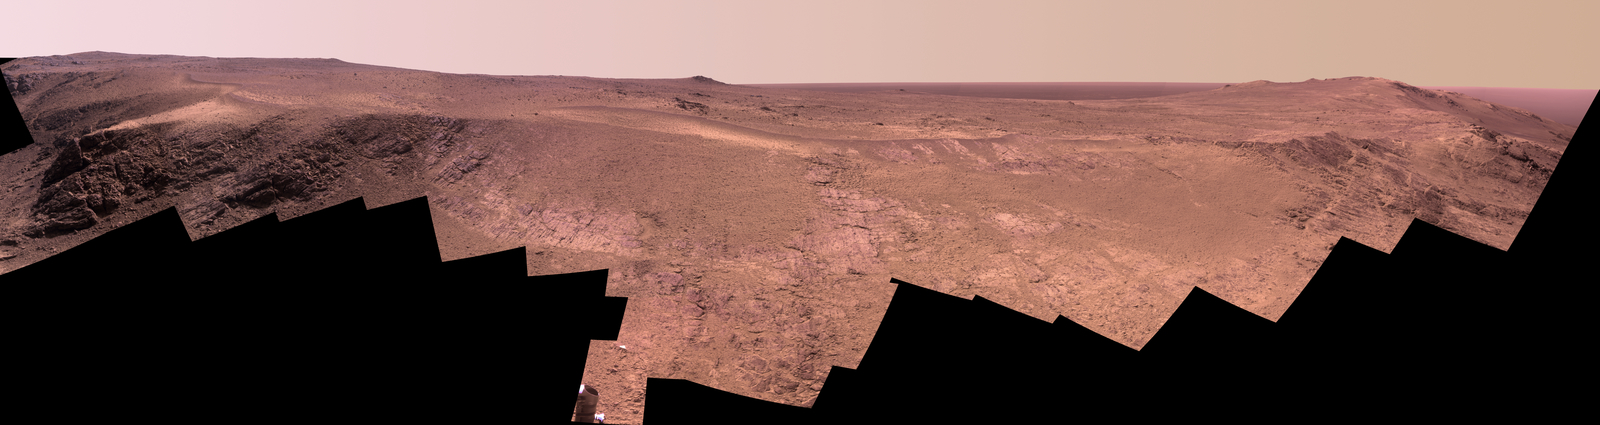 "A grooved ridge called ""Rocheport"" on the rim of Mars' Endeavour Crater spans this scene from the Pancam on NASA's Mars rover Opportunity. The view extends from south-southeast on the left to north on the right. The site is near the southern end of an Endeavour rim segment called ""Cape Tribulation."""